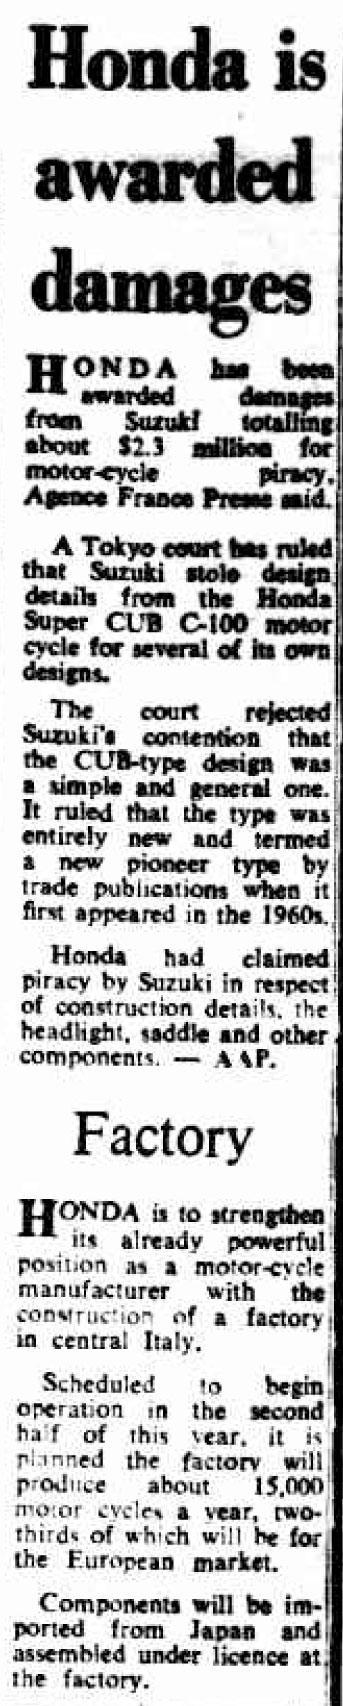 honda is awarded damages 06 1973